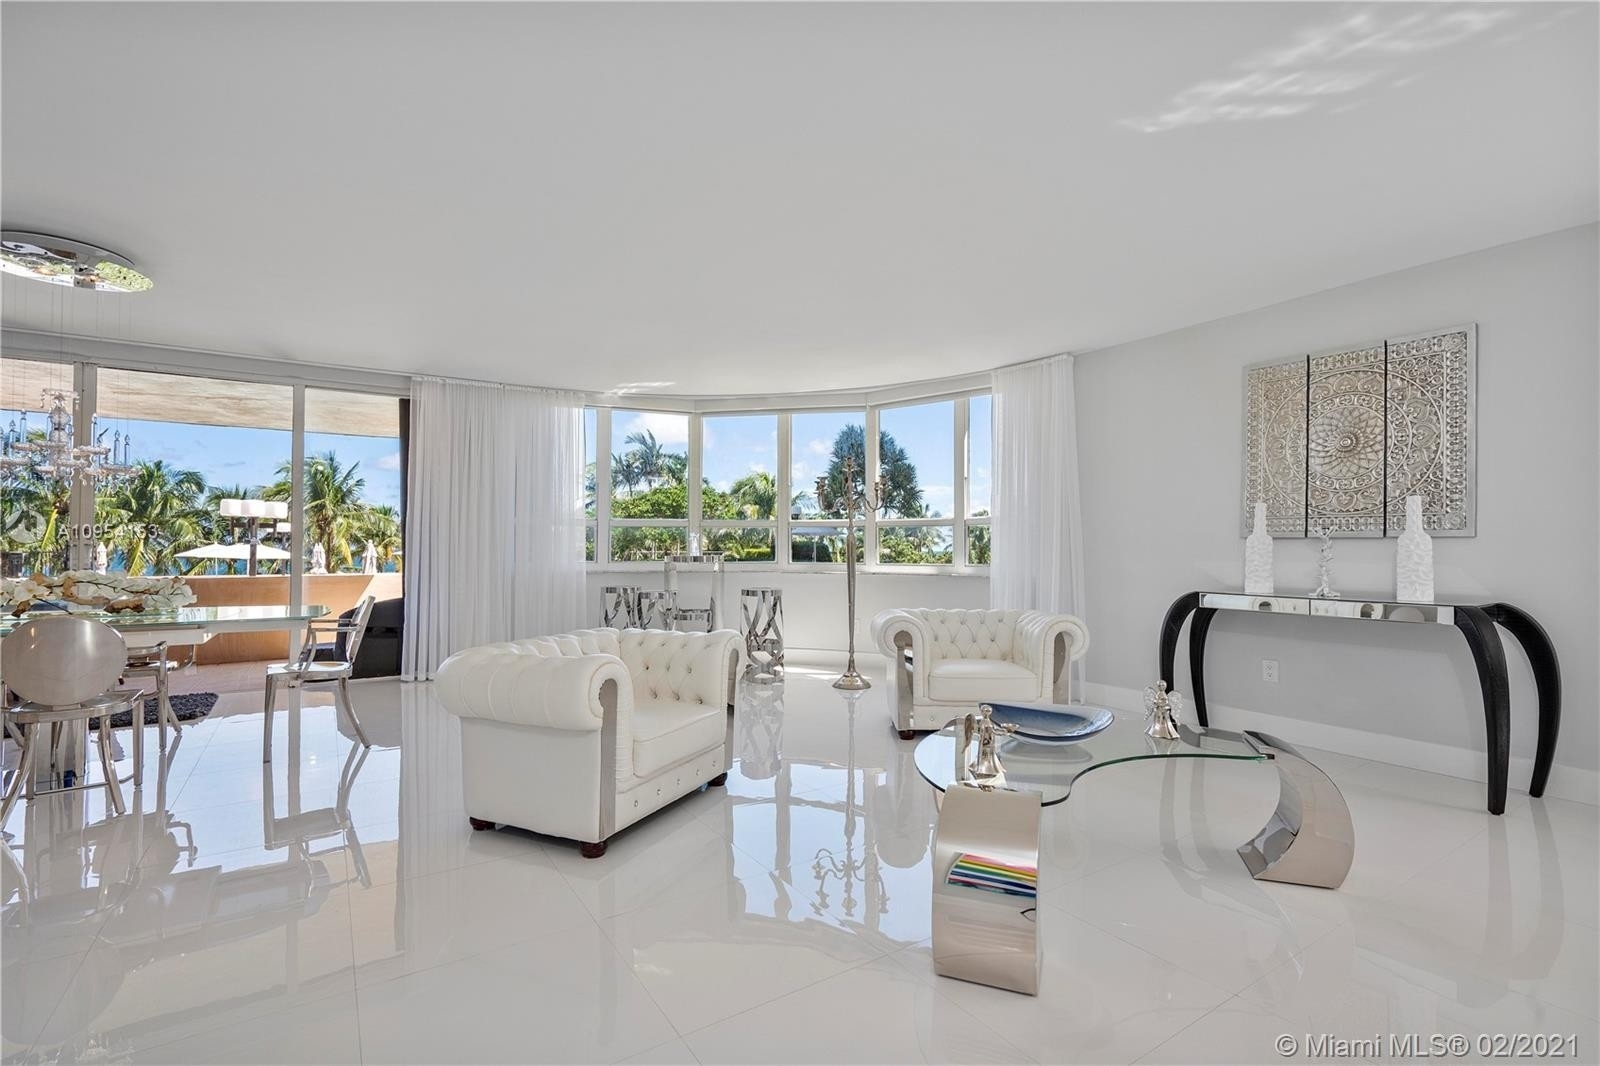 12. Condominiums for Sale at 10175 Collins Ave , 102 Bal Harbour, FL 33154